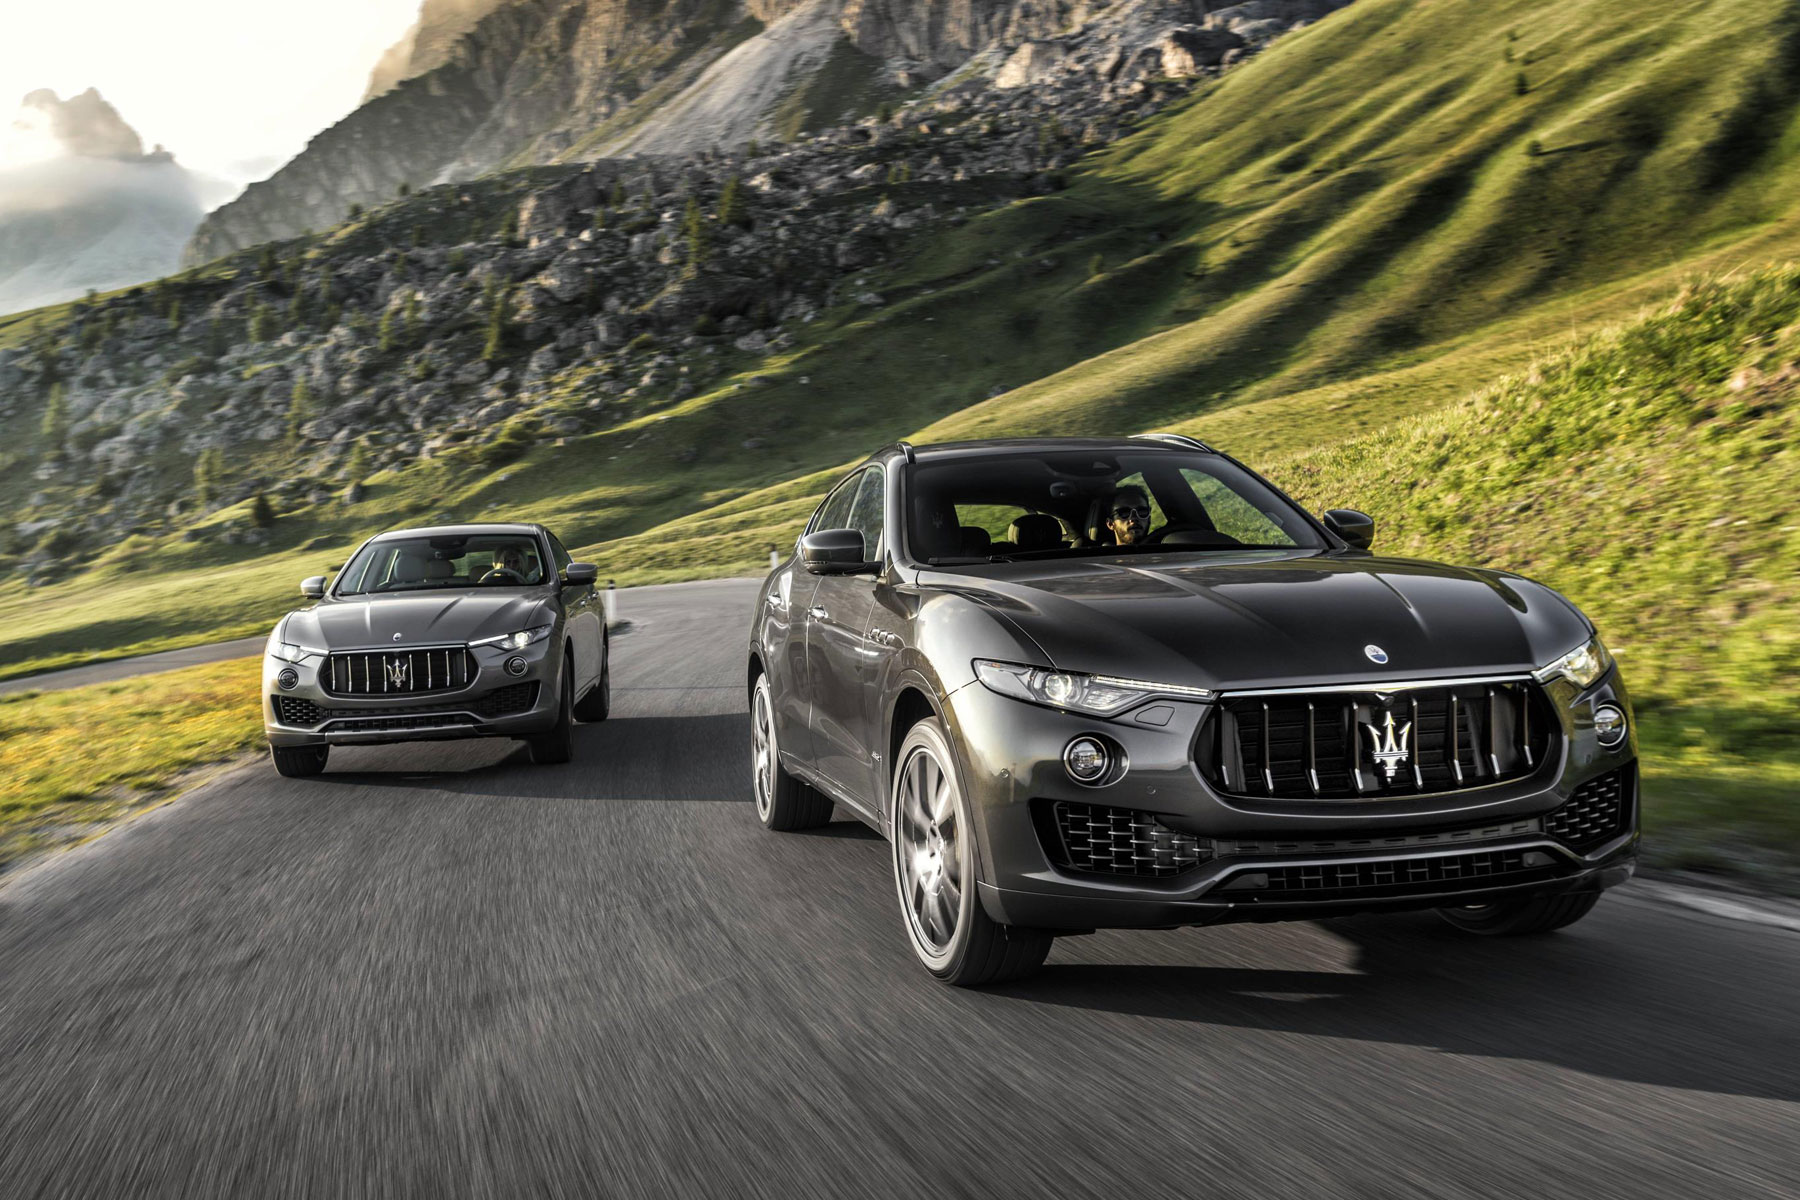 maserati levante s the 39 ferrari suv 39 comes to the uk. Black Bedroom Furniture Sets. Home Design Ideas